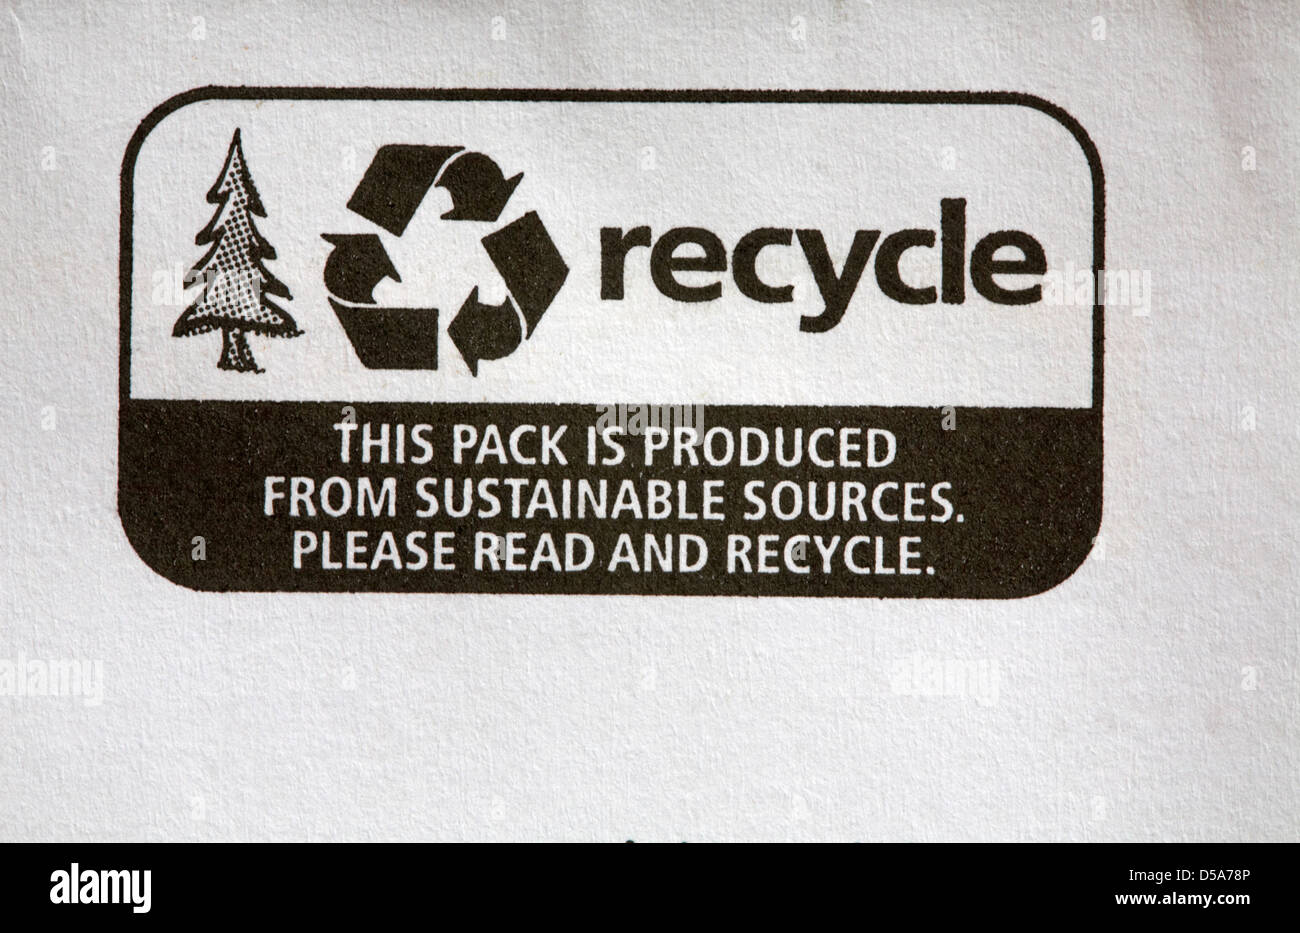 Recycle this pack is produced from sustainable sources please read and recycle - Stock Image